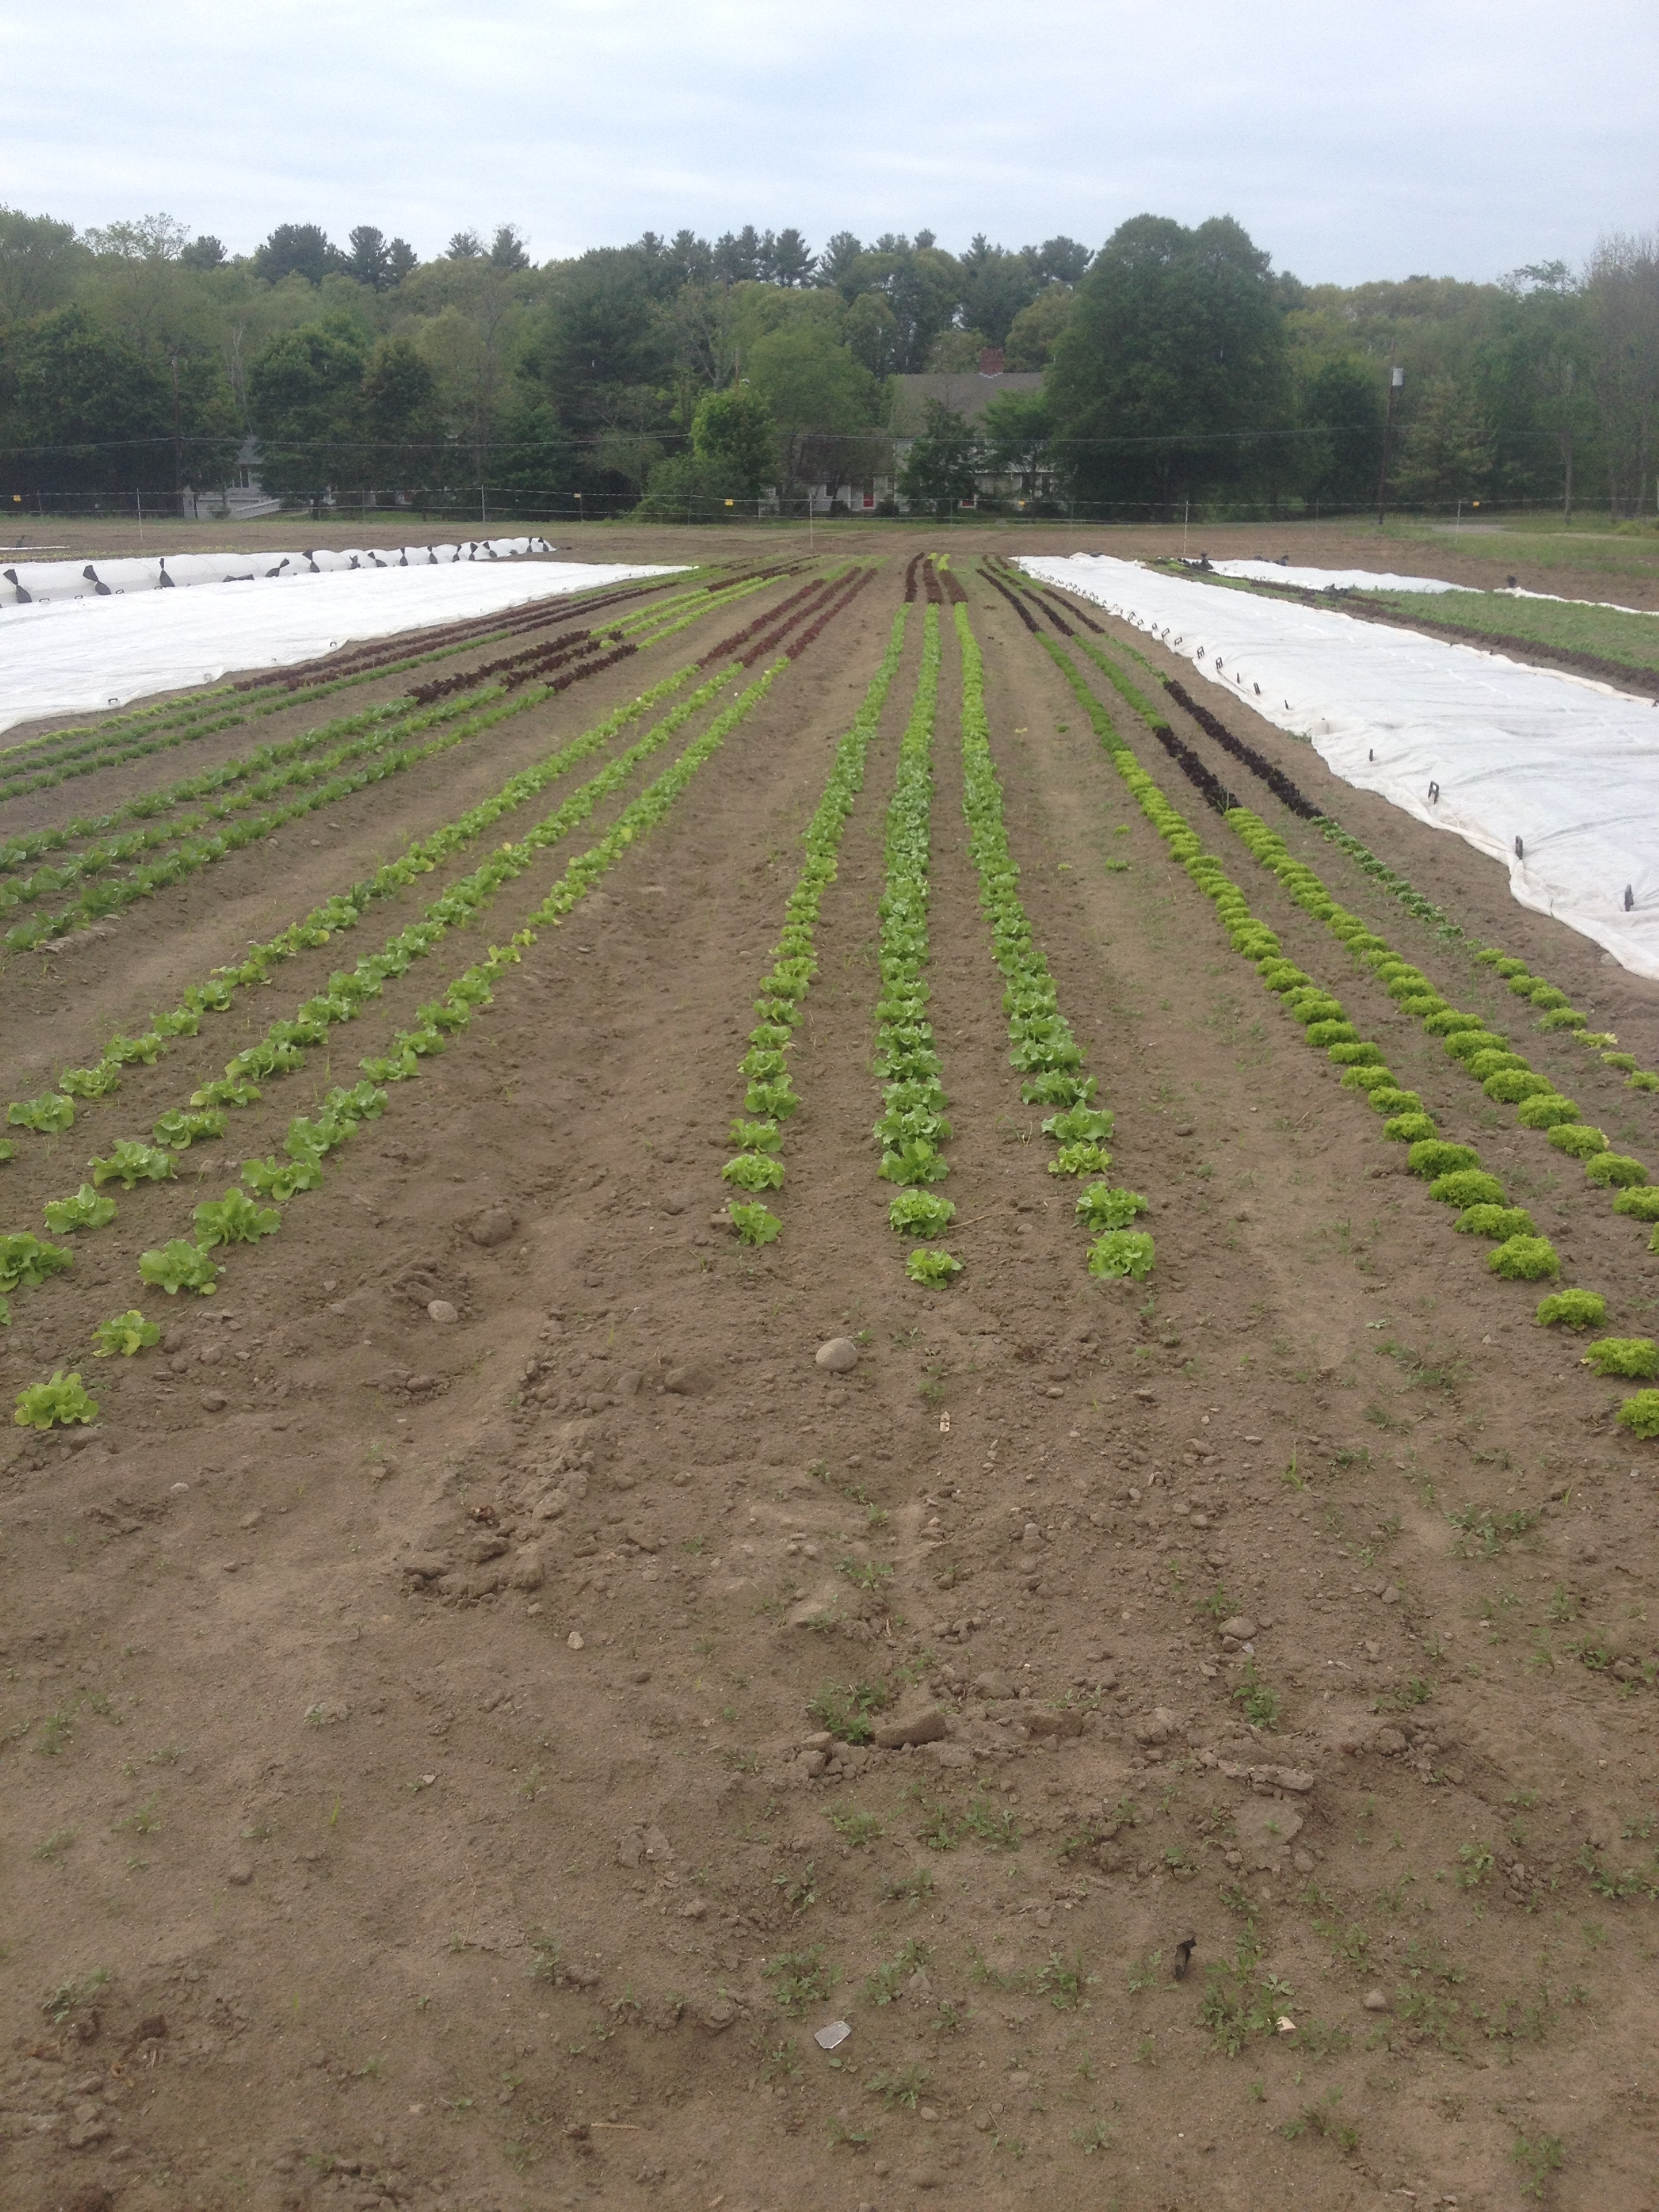 Lettuce and Salanova surrounded by greens covered with row cover to protect against flea beetle damage.